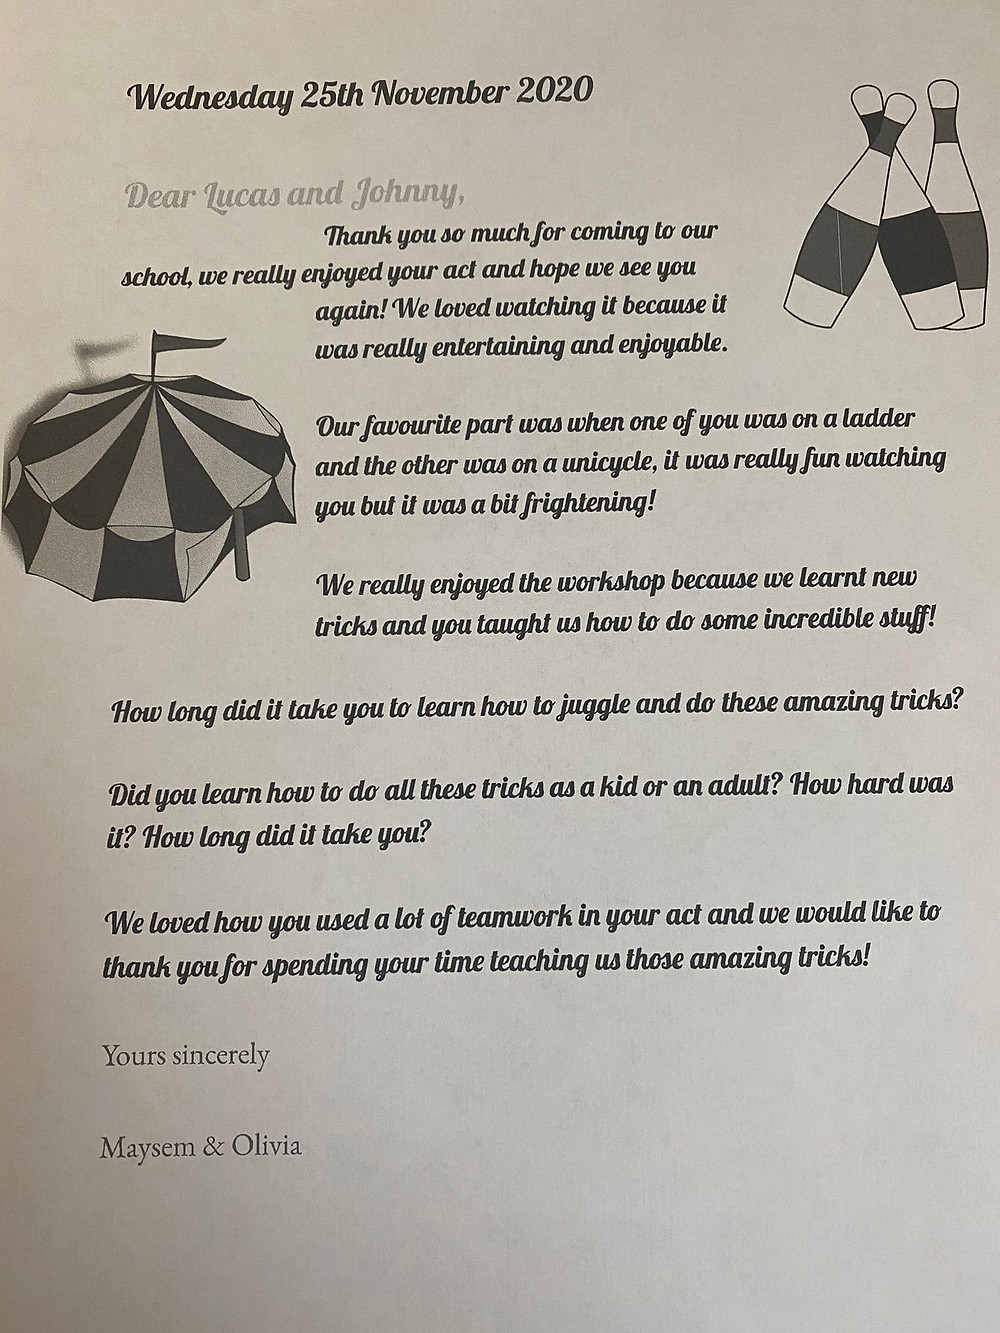 circus skills thank you letter